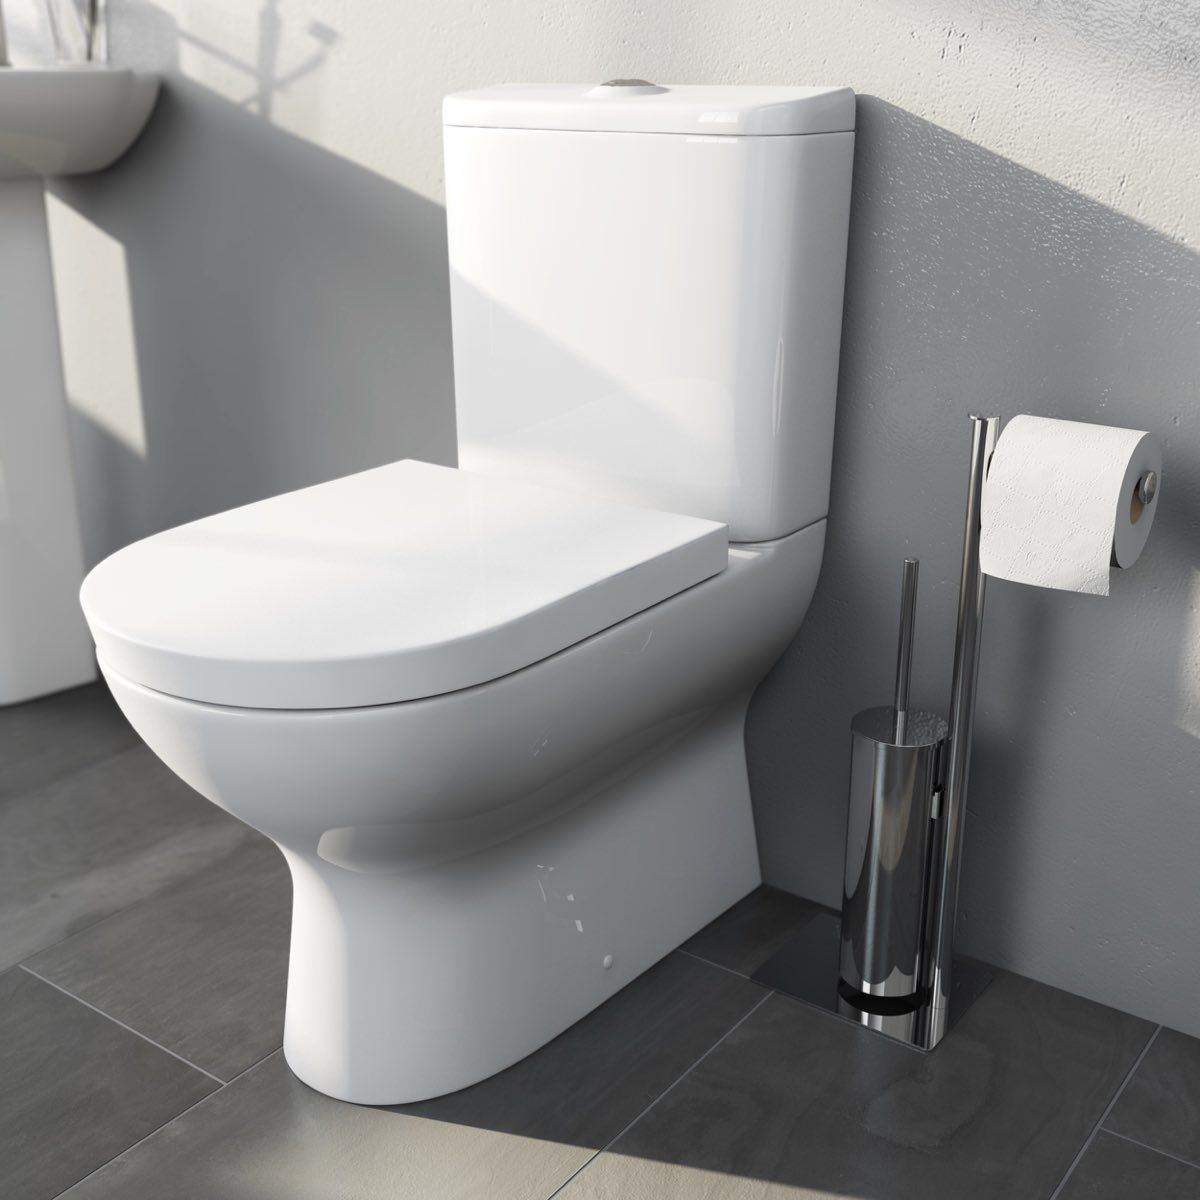 mode heath close coupled toilet with soft close toilet. Black Bedroom Furniture Sets. Home Design Ideas